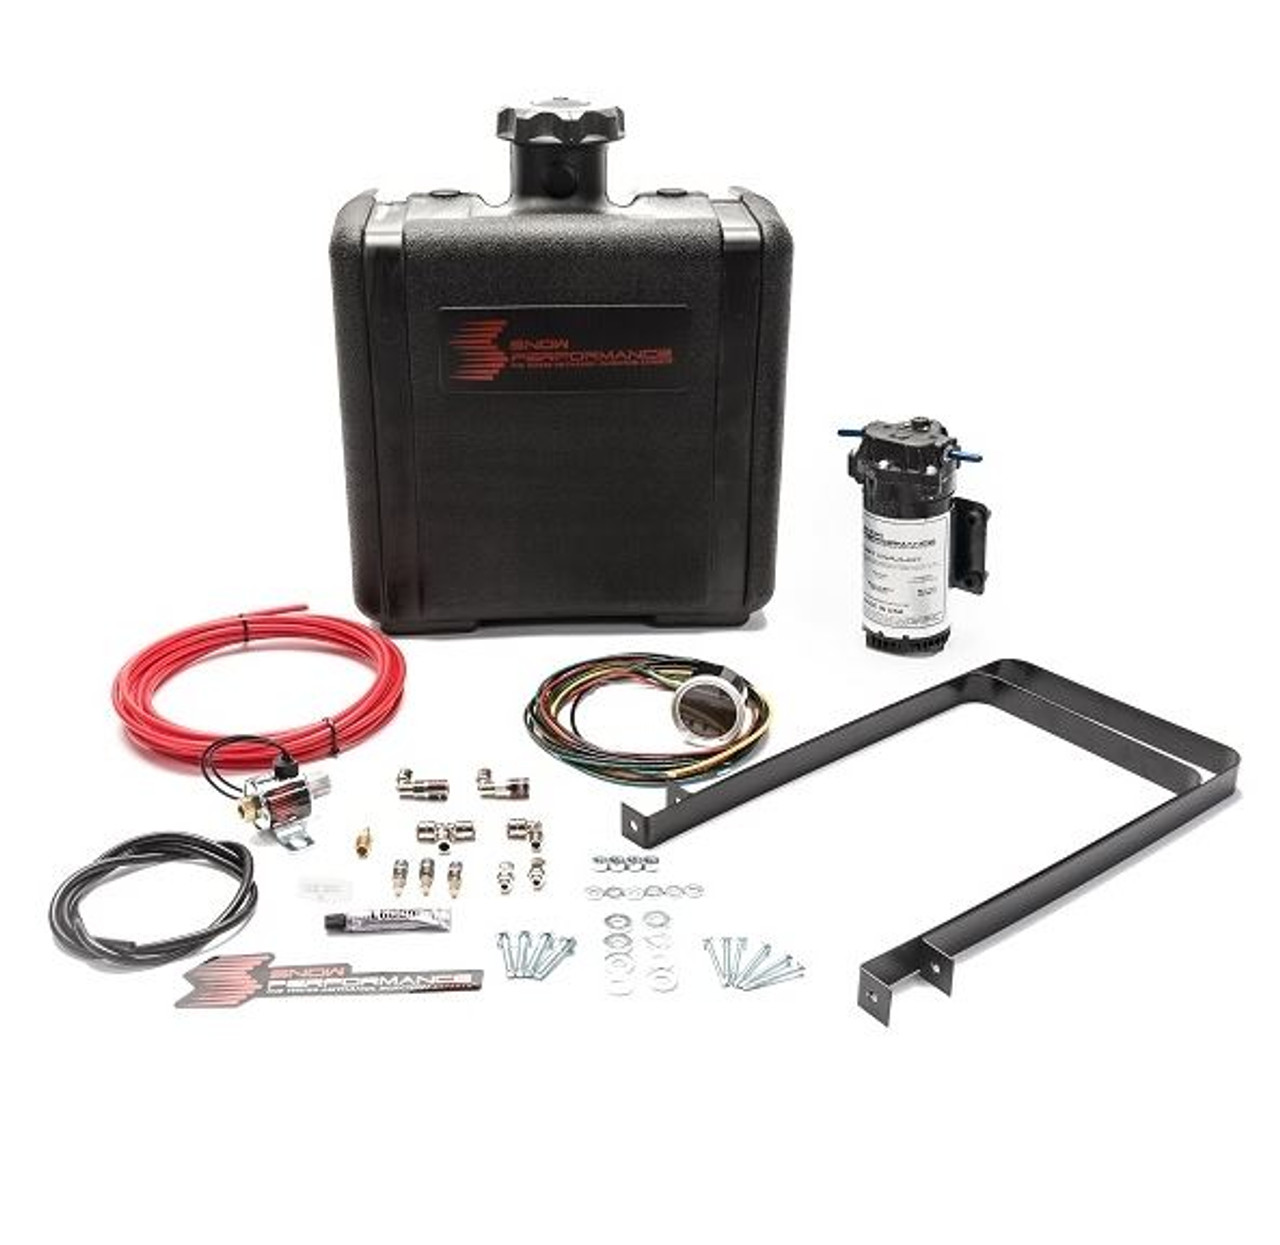 Snow Performance Diesel Stage 2 Boost Cooler Water-Methanol Injection Kit for Chevy/ GMC Duramax LBZ/LLY/LMM/LML/L5P (SNO-430)